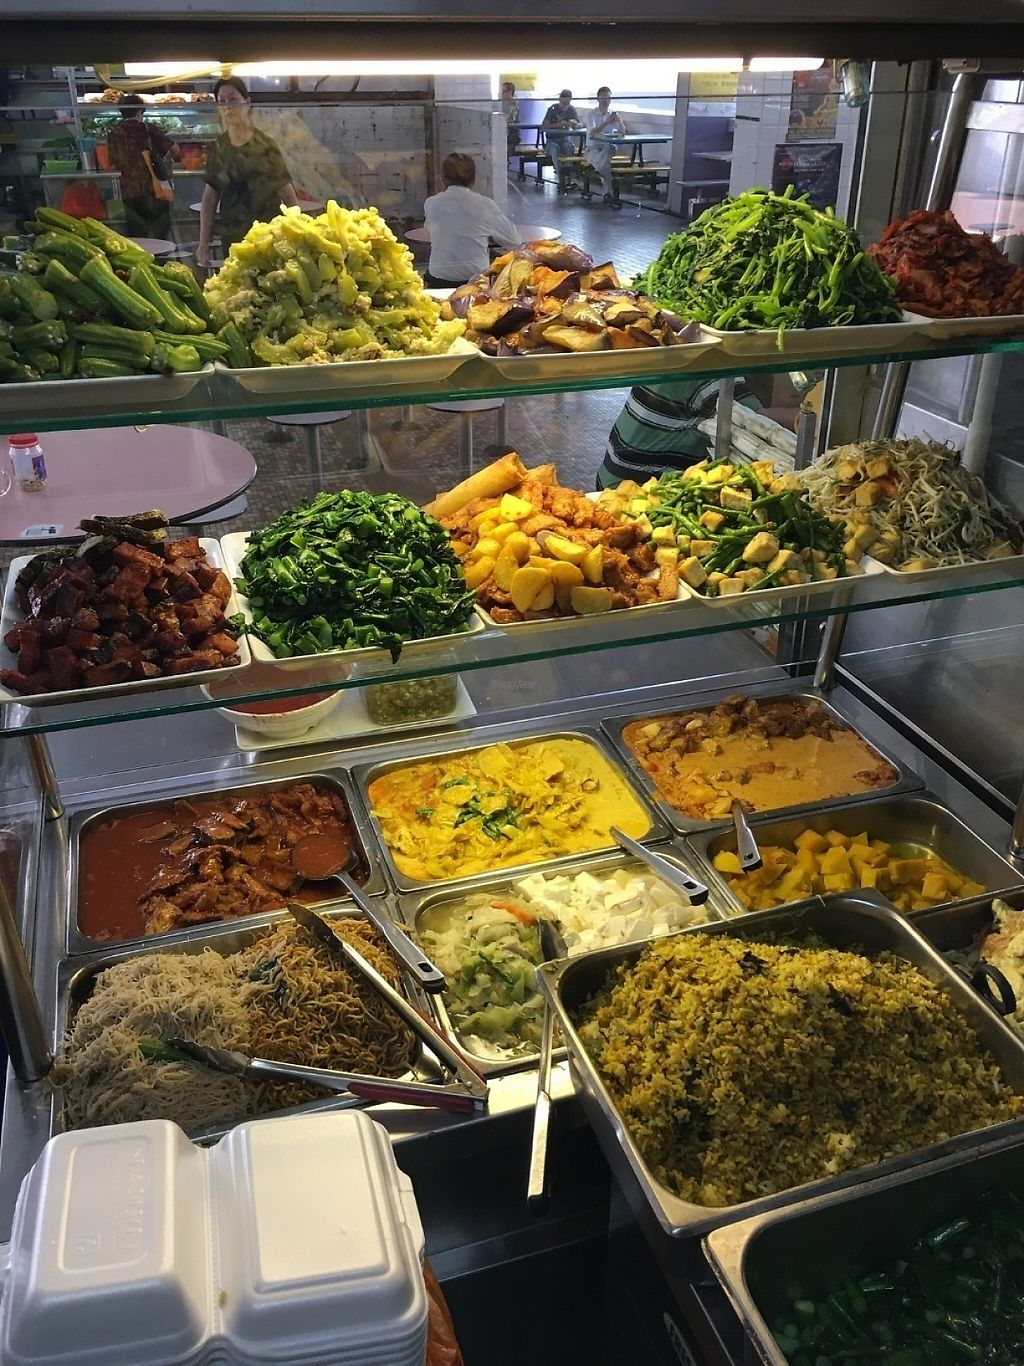 """Photo of CLOSED: Yum Yum Yummy Vegetarian - Ghim Moh Market  by <a href=""""/members/profile/Larrykoh"""">Larrykoh</a> <br/>Vegetarian food <br/> March 2, 2017  - <a href='/contact/abuse/image/69892/231954'>Report</a>"""